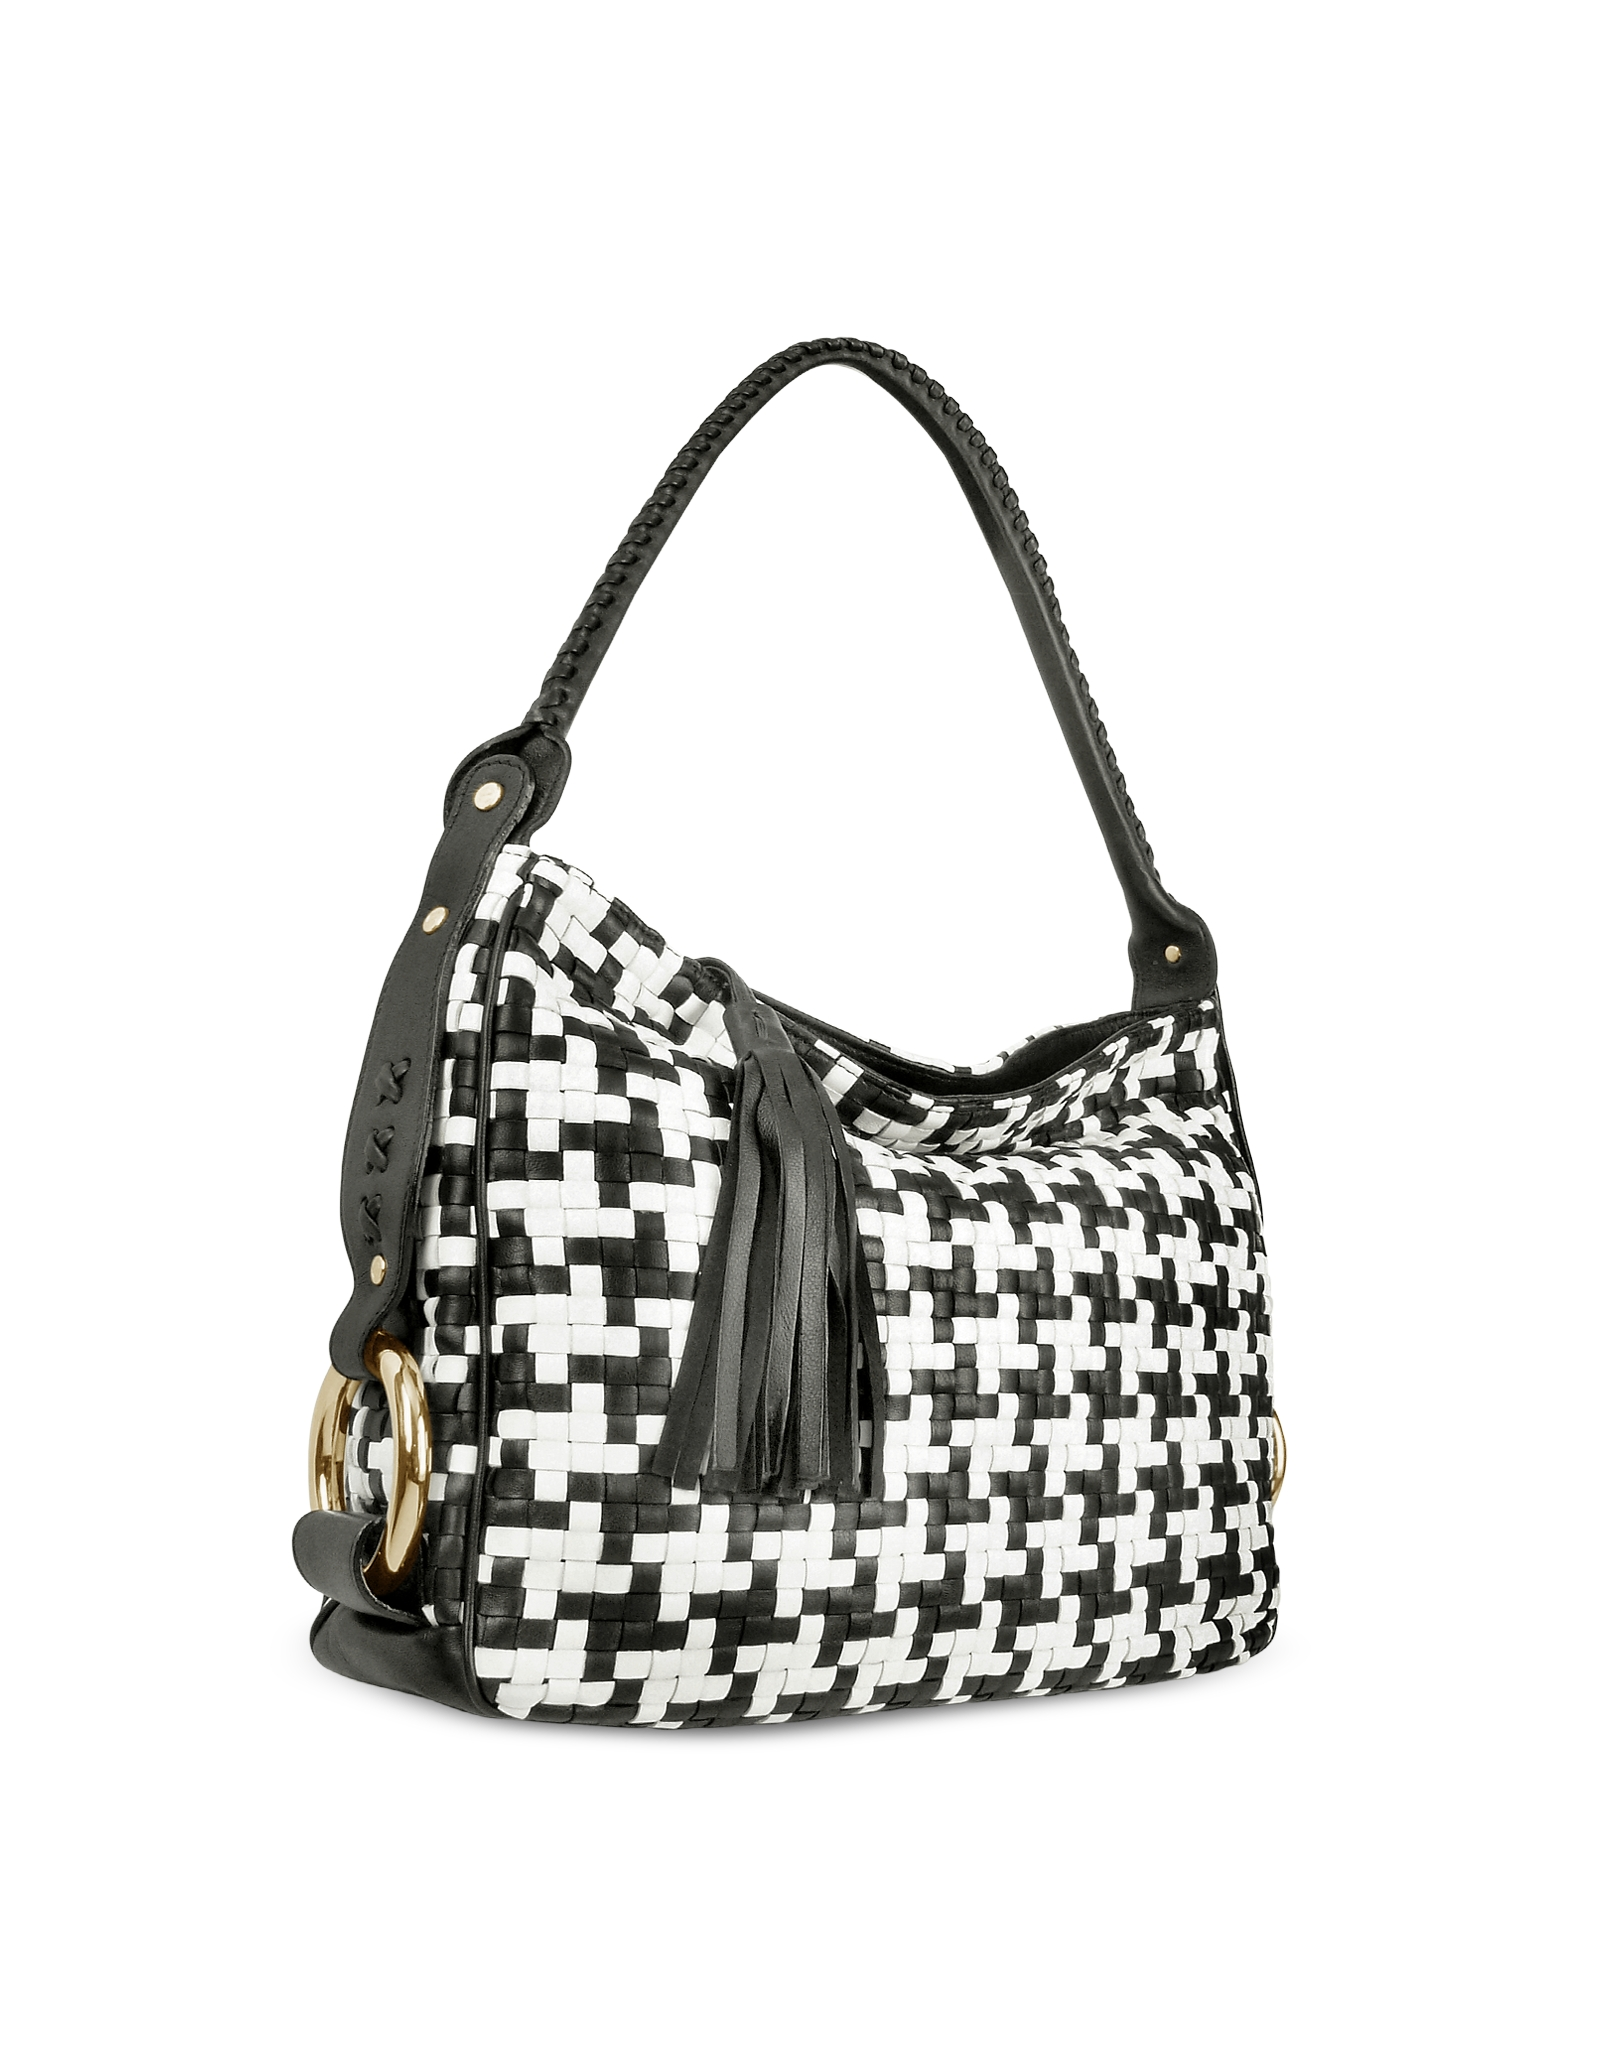 Free shipping on tote bags for women at puraconga.ml Shop a variety of tote-bag styles and sizes from the best brands. Free shipping and returns.